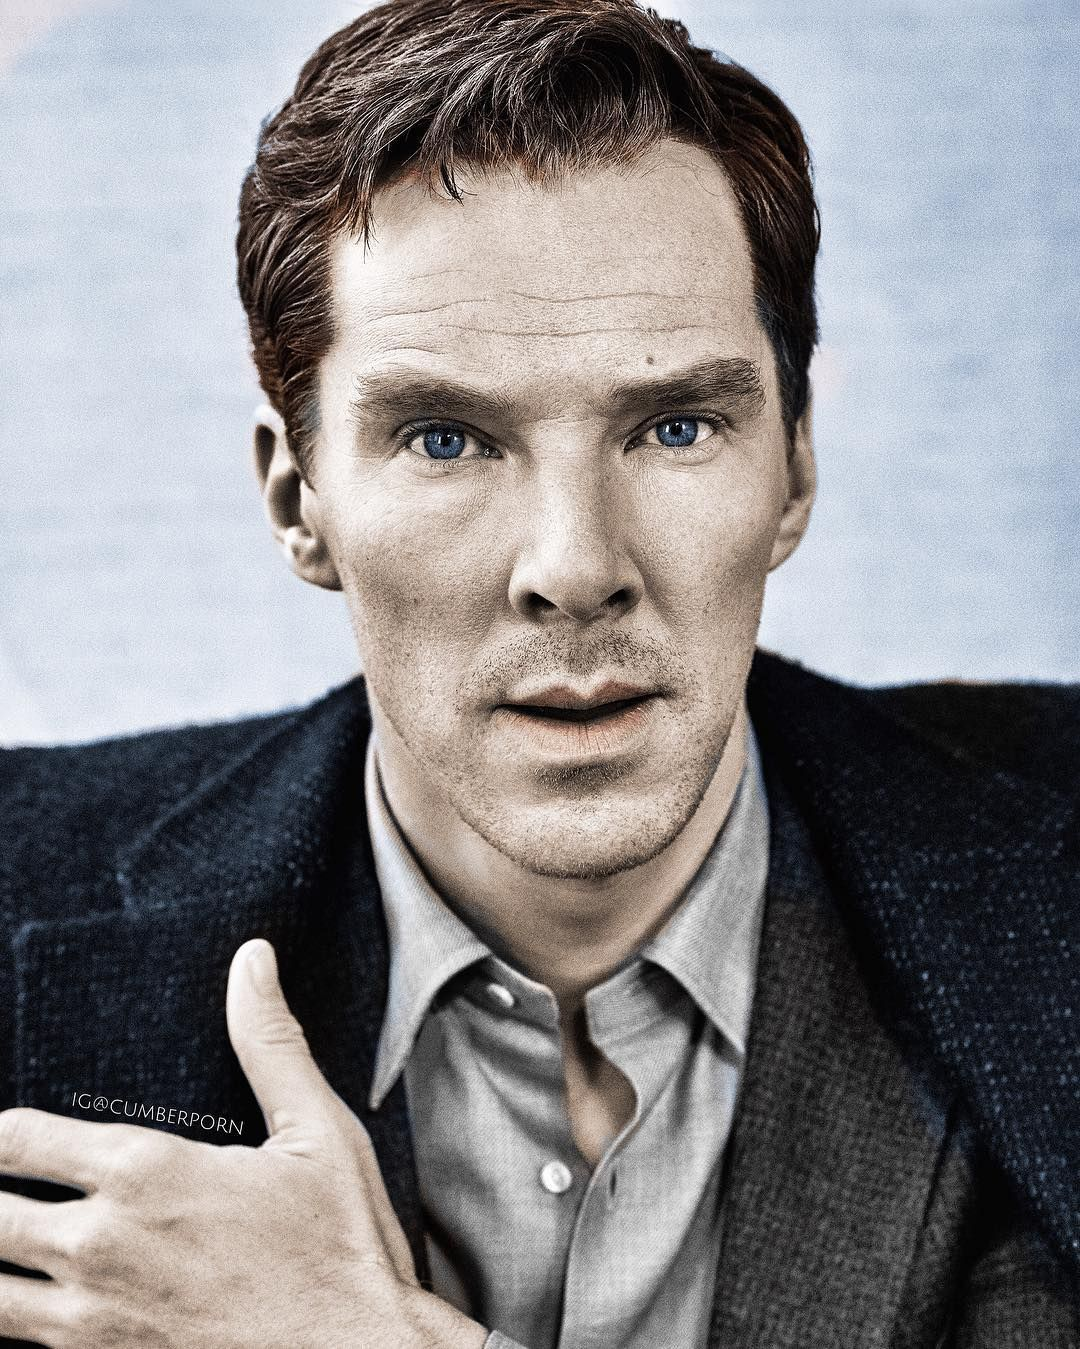 Hand over heart we pledge our undying love for Cumberbatch…